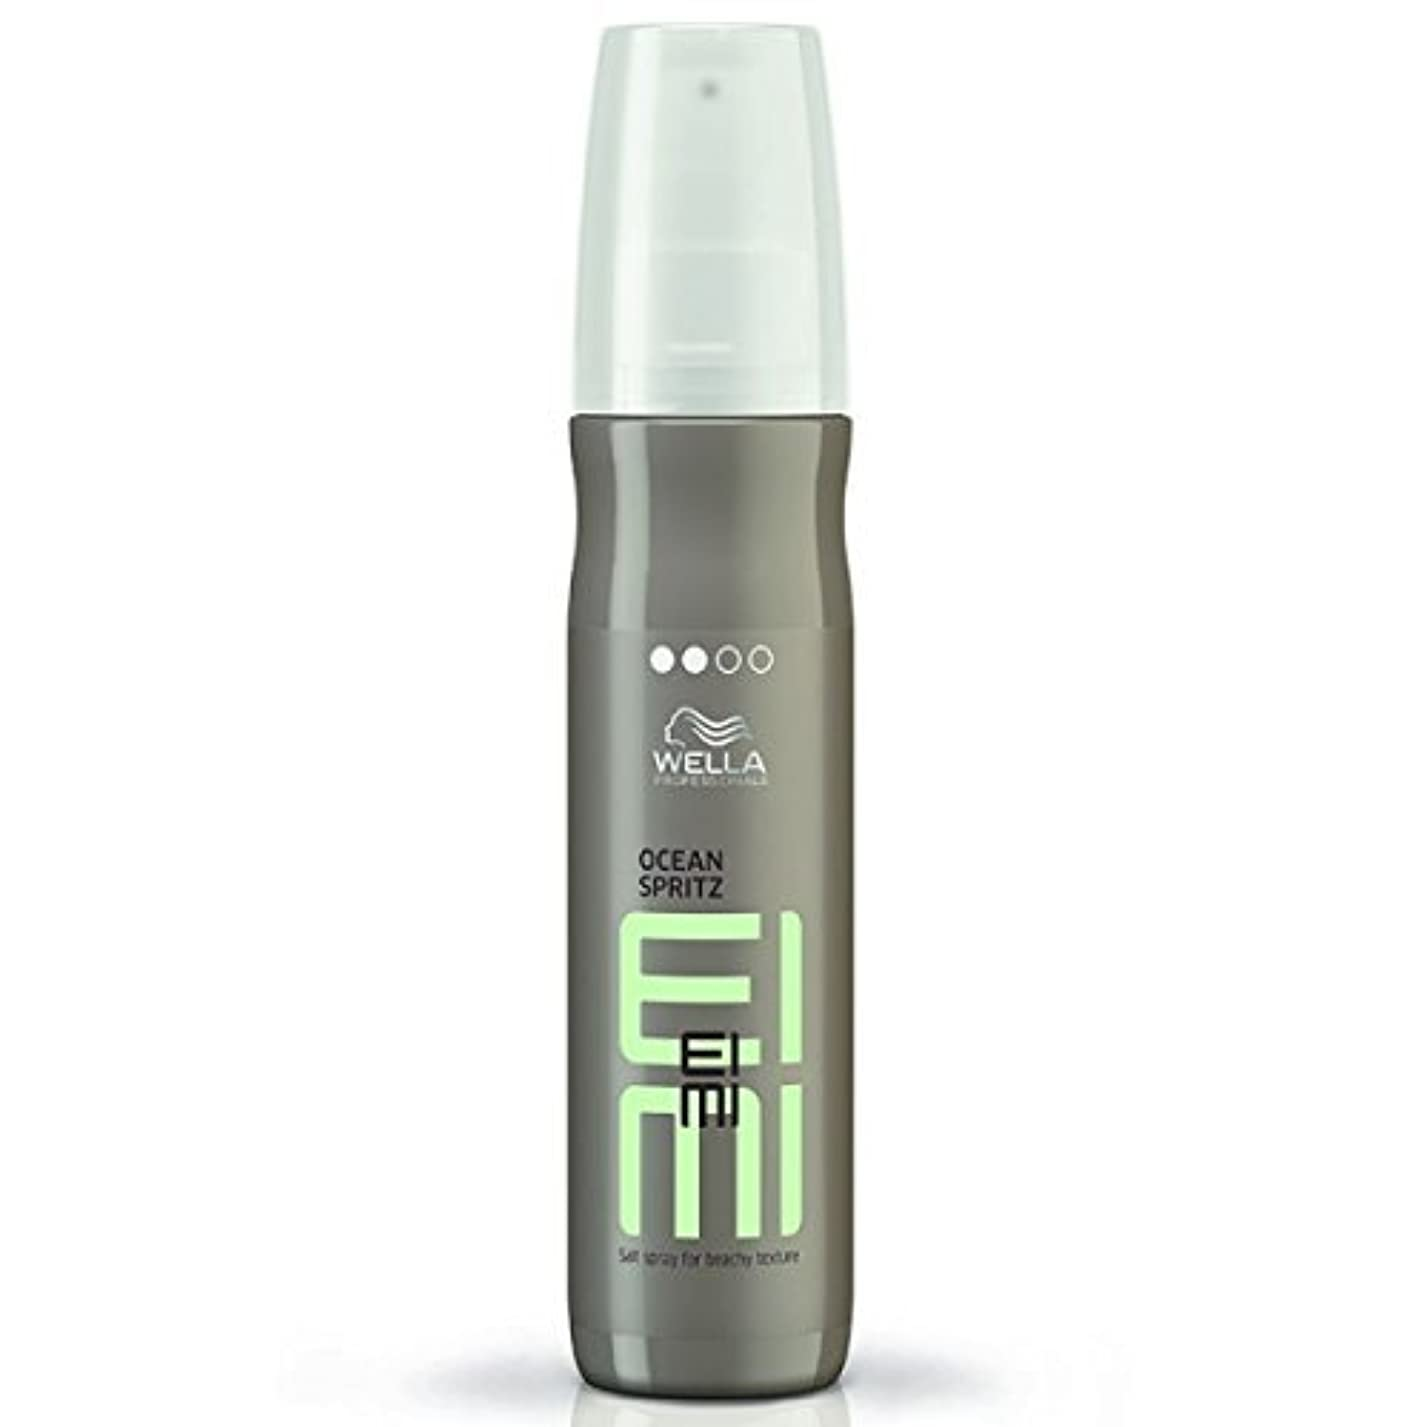 使い込む病的定義Wella EIMI Ocean Spritz - Salt Spray For Beachy Hair Texture 150 ml [並行輸入品]